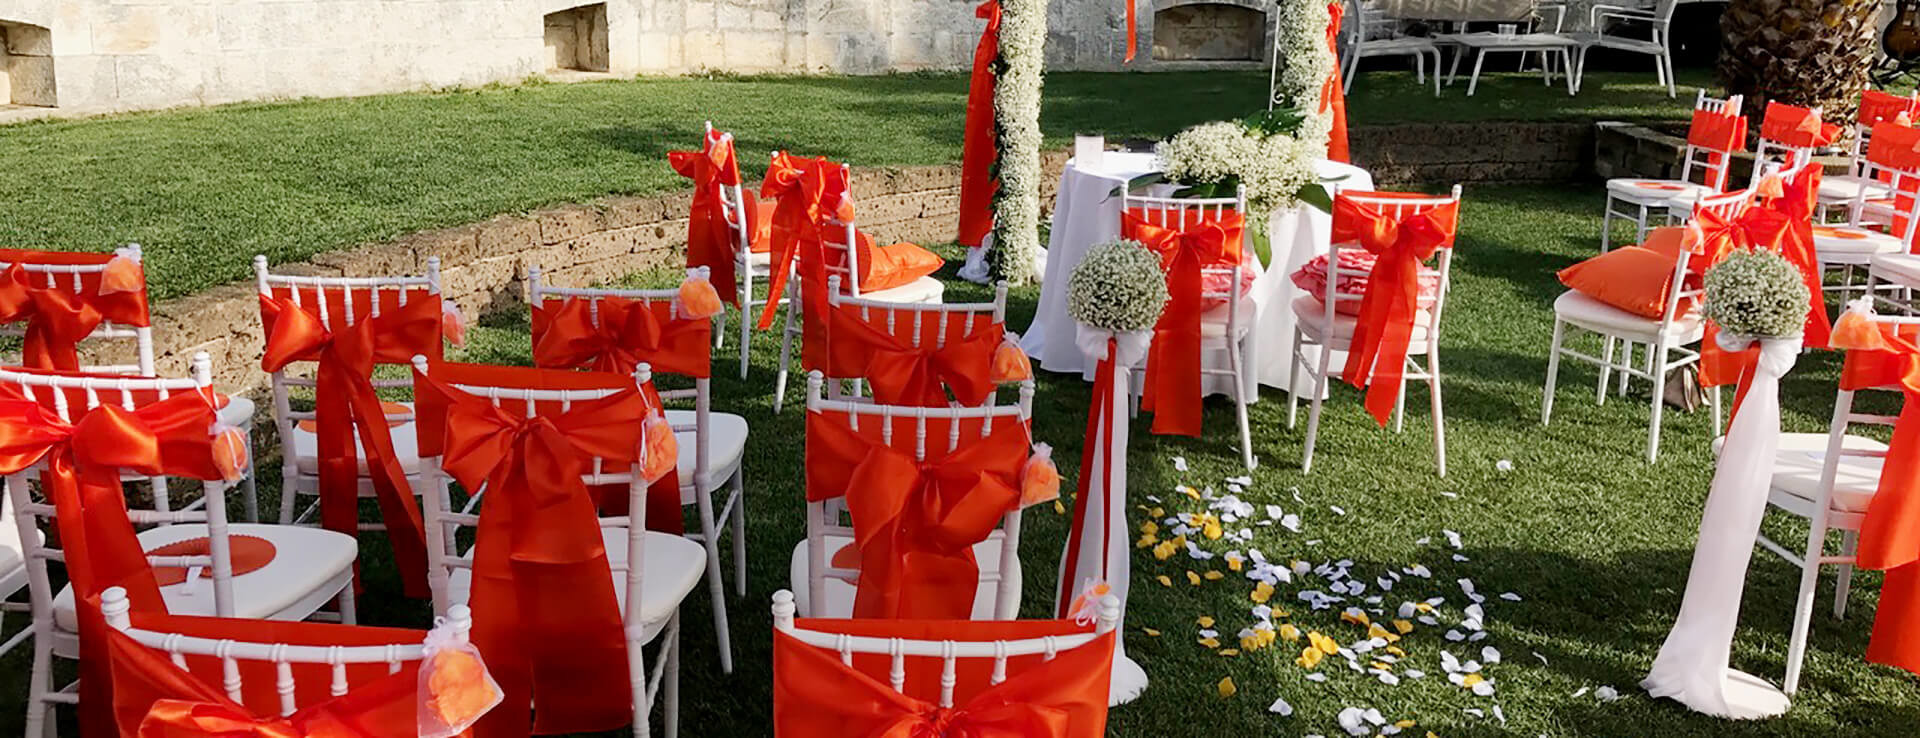 Location per Matrimonio Civile sul Lago di Garda